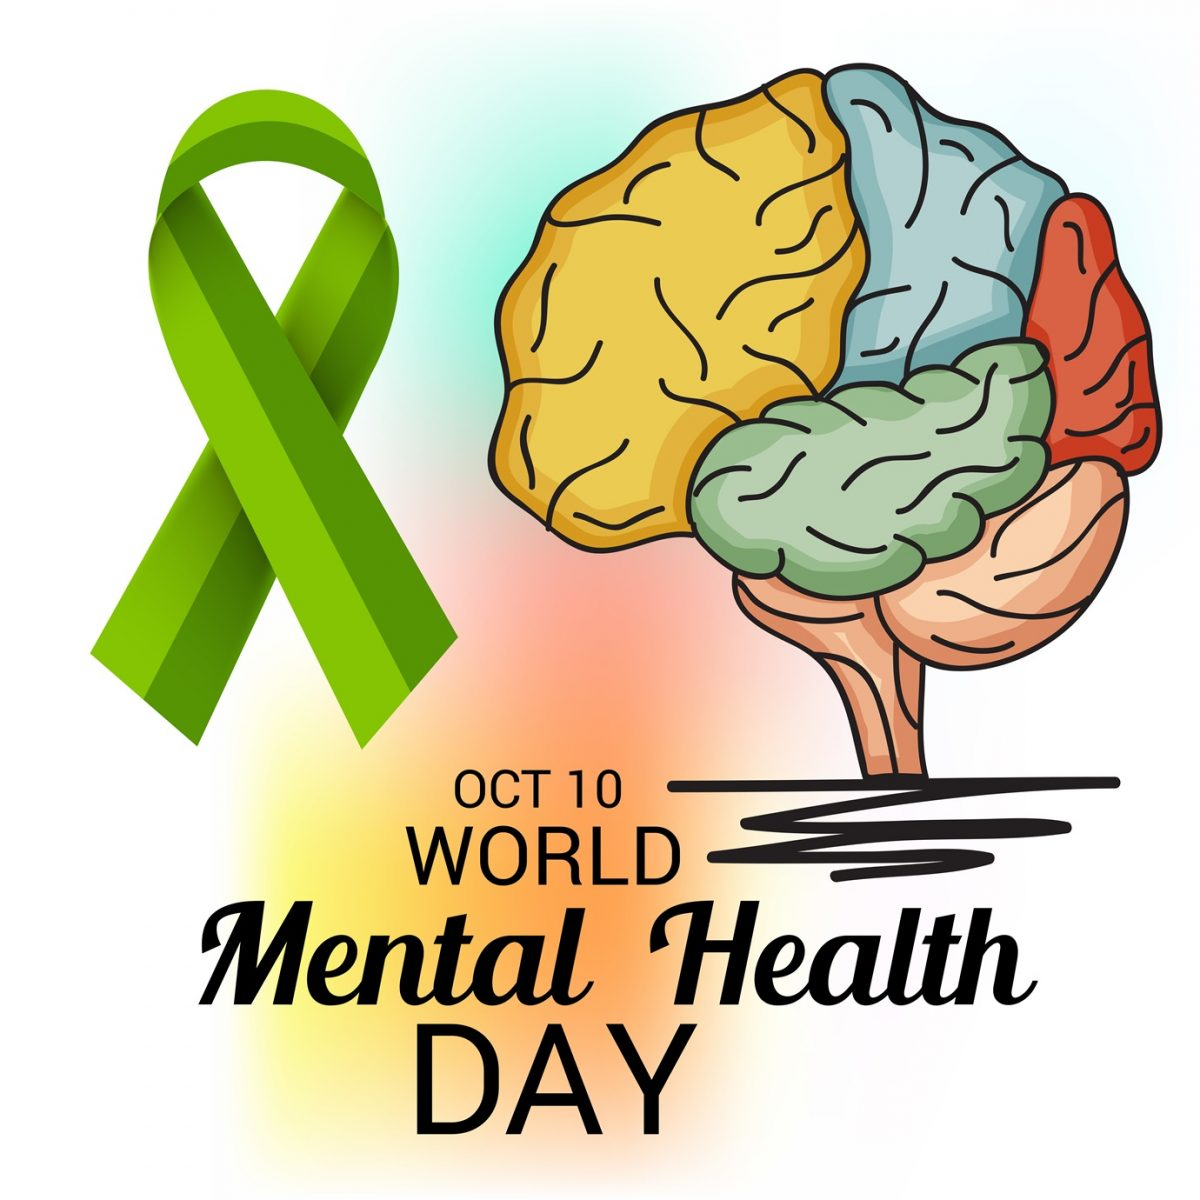 What Awareness did WHO spread on World Mental Health Day?